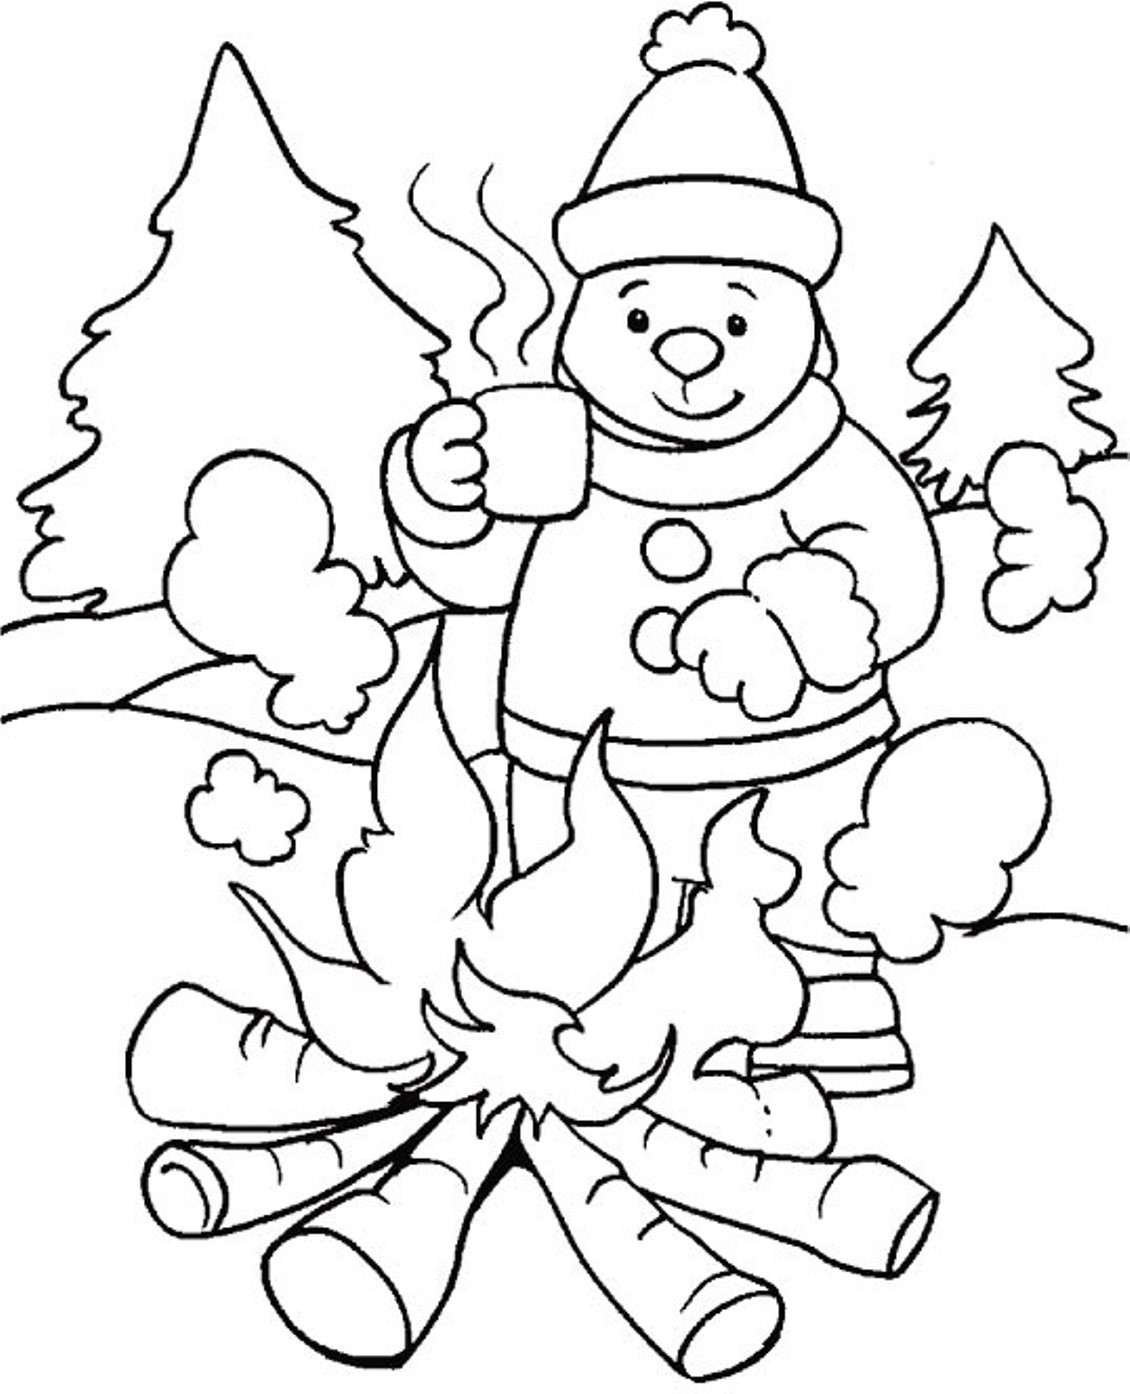 Seasons Coloring Pages  Winter Coloring Pages